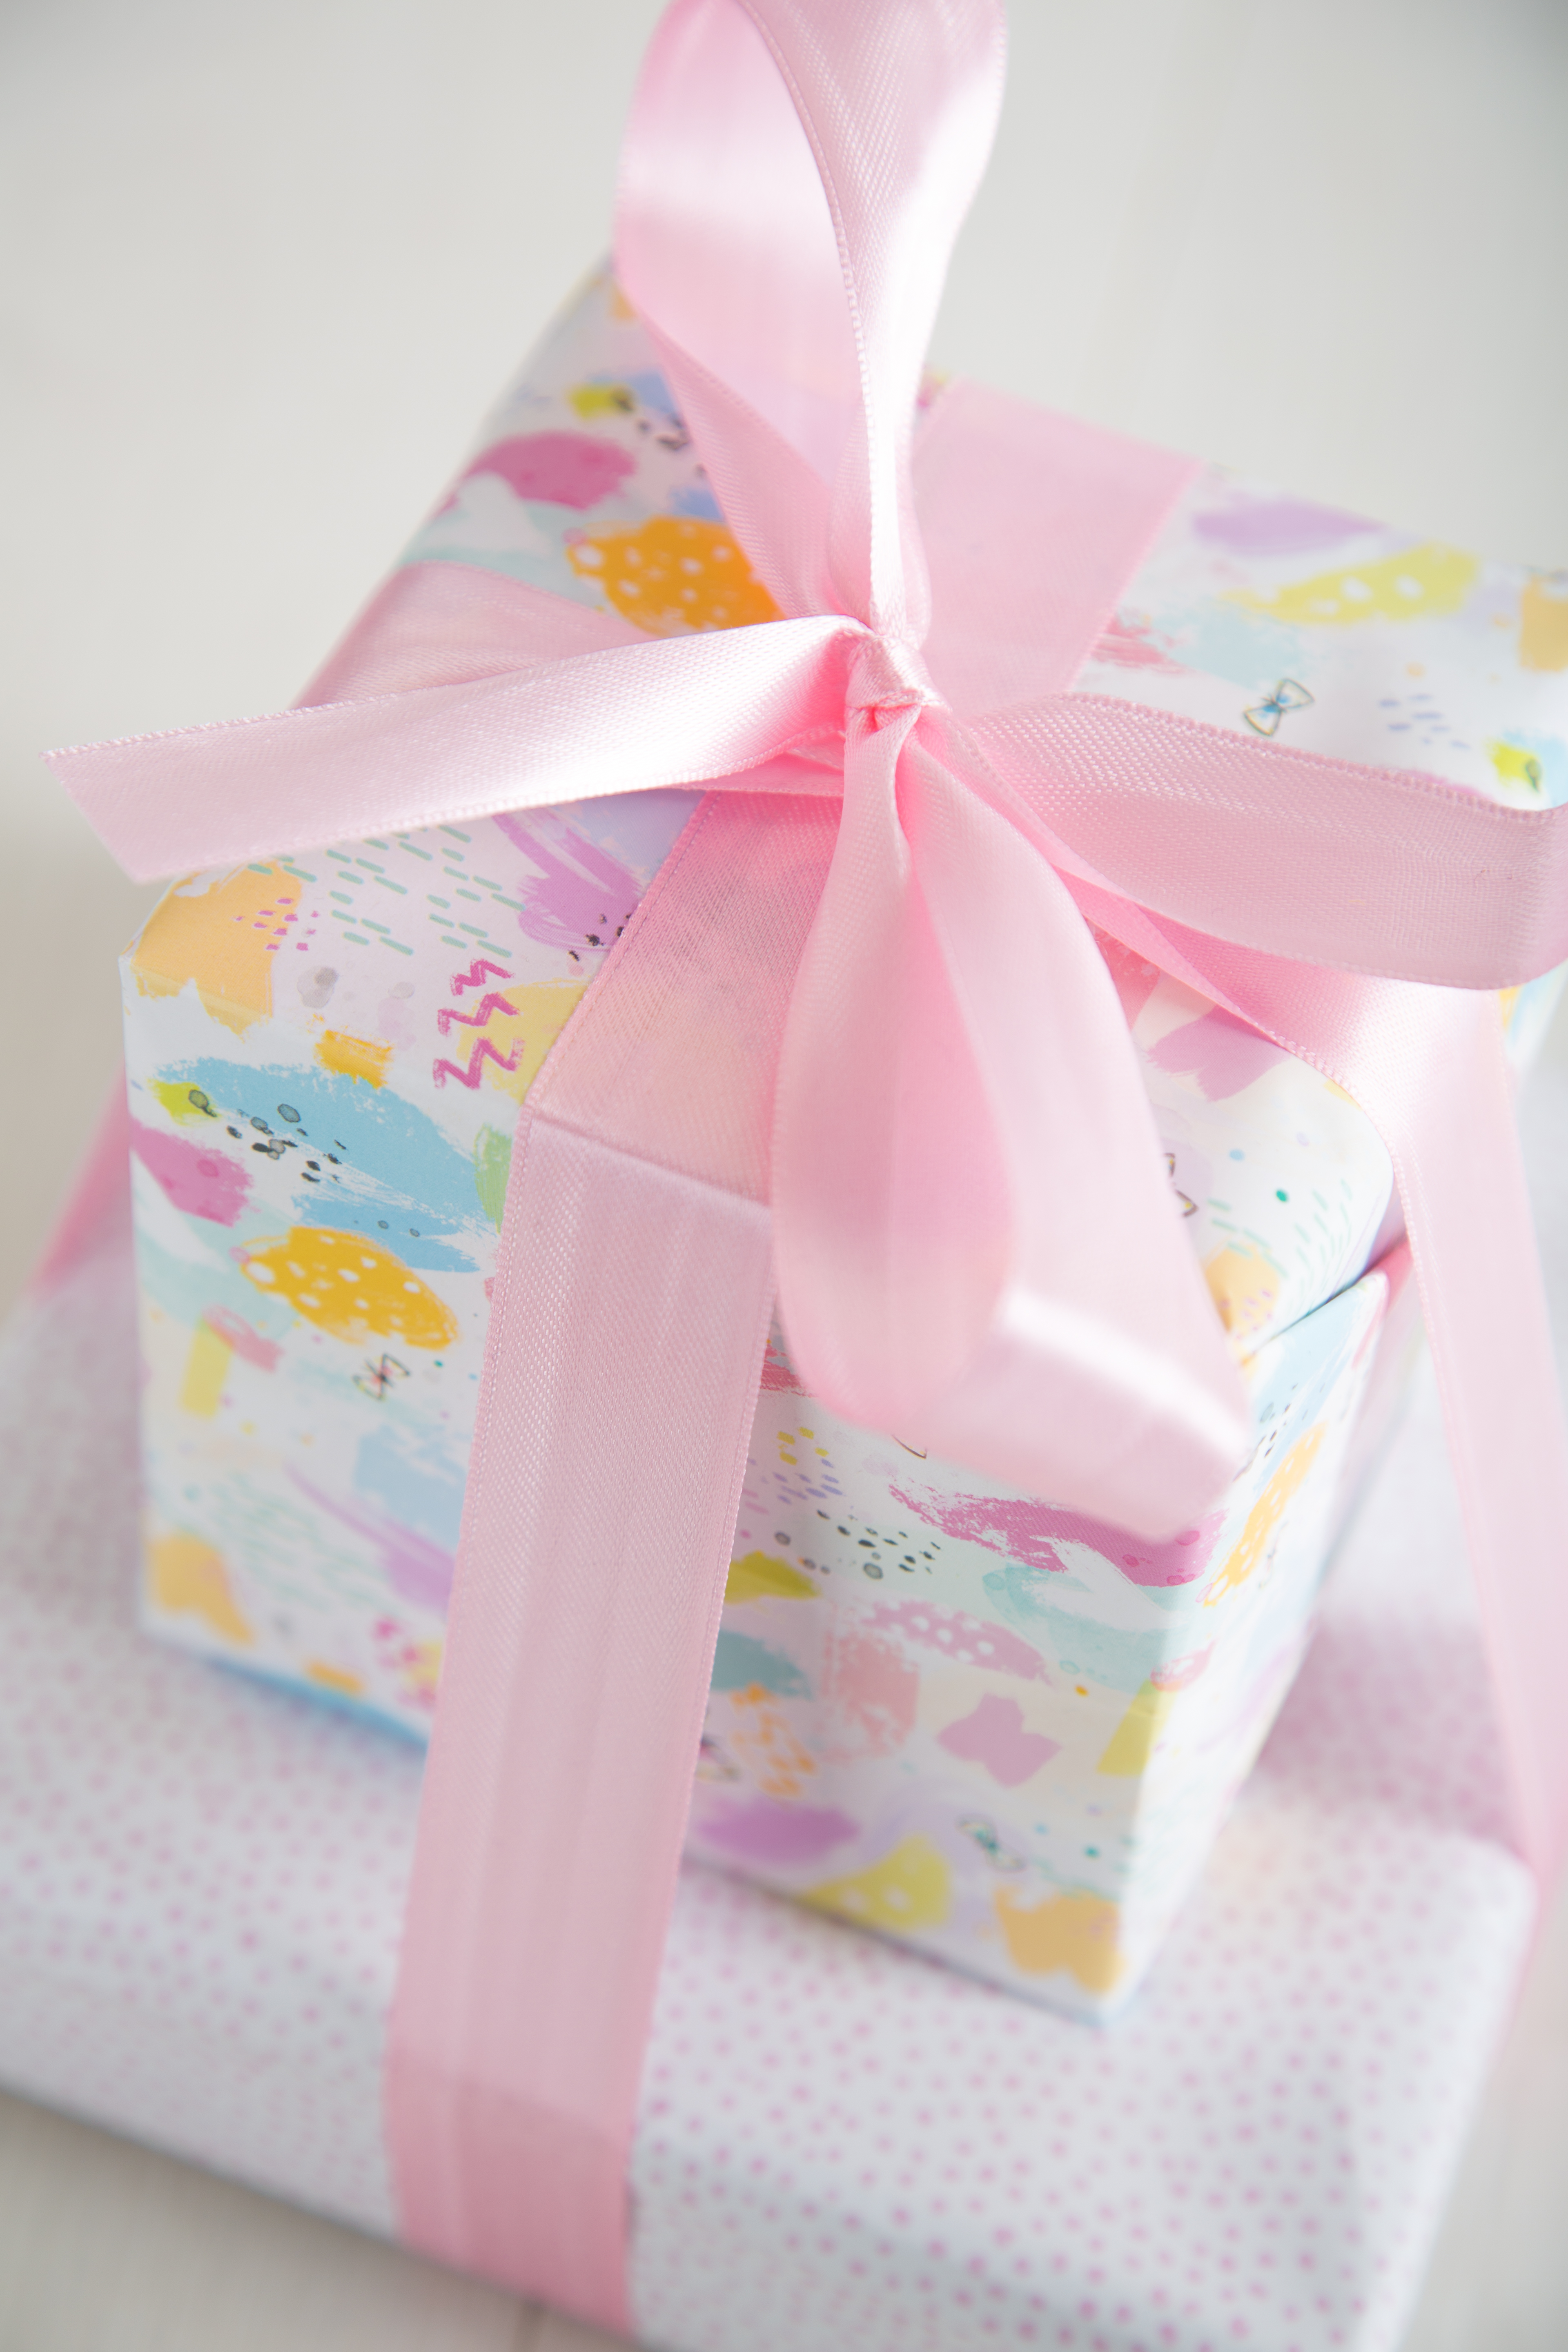 Hallmark brings giftwrap production back to the UK | PG Buzz